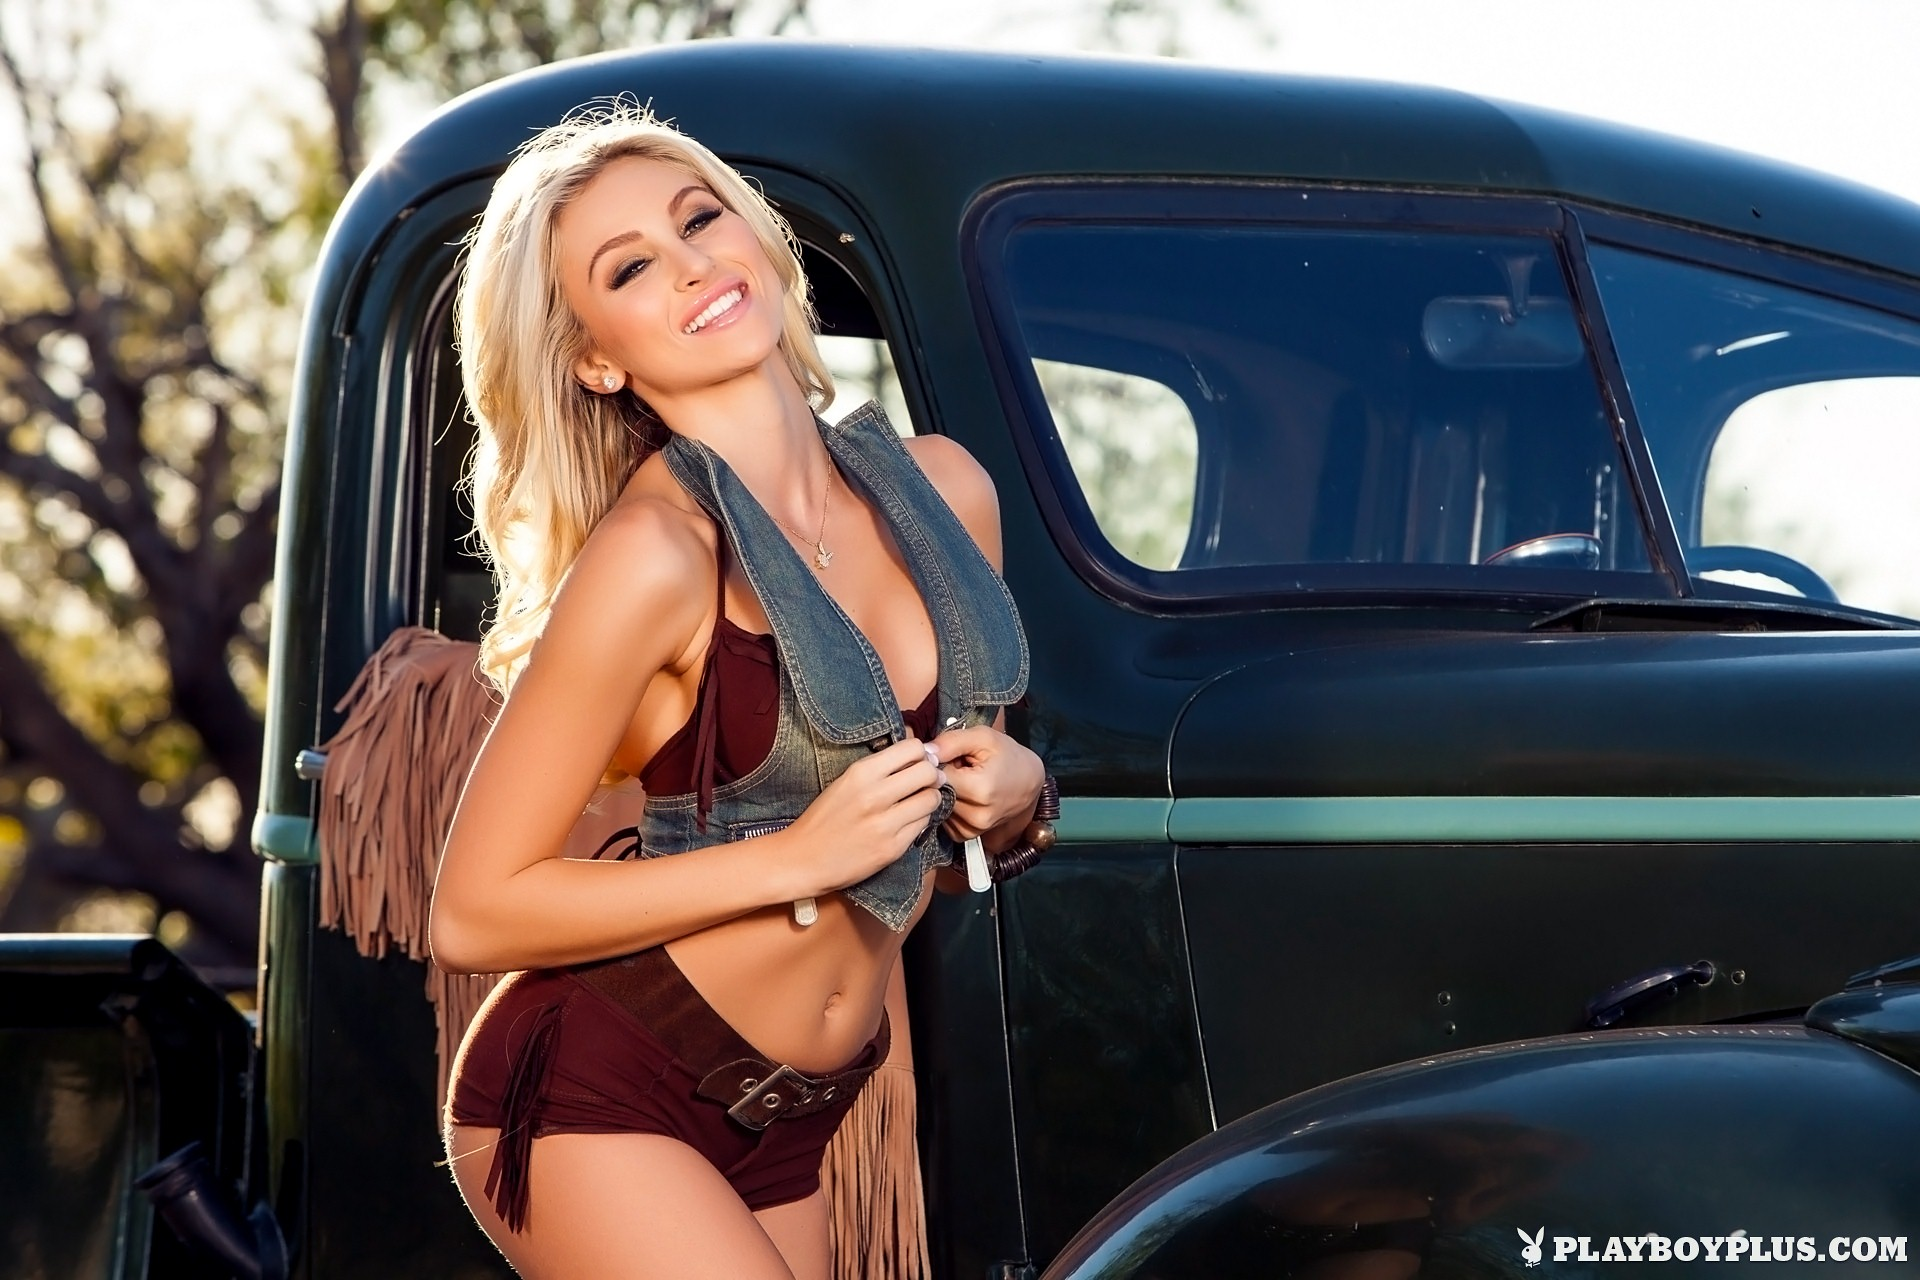 Khloë Terae nude in Desert Stop for Playboy | Daily Girls @ Female Update